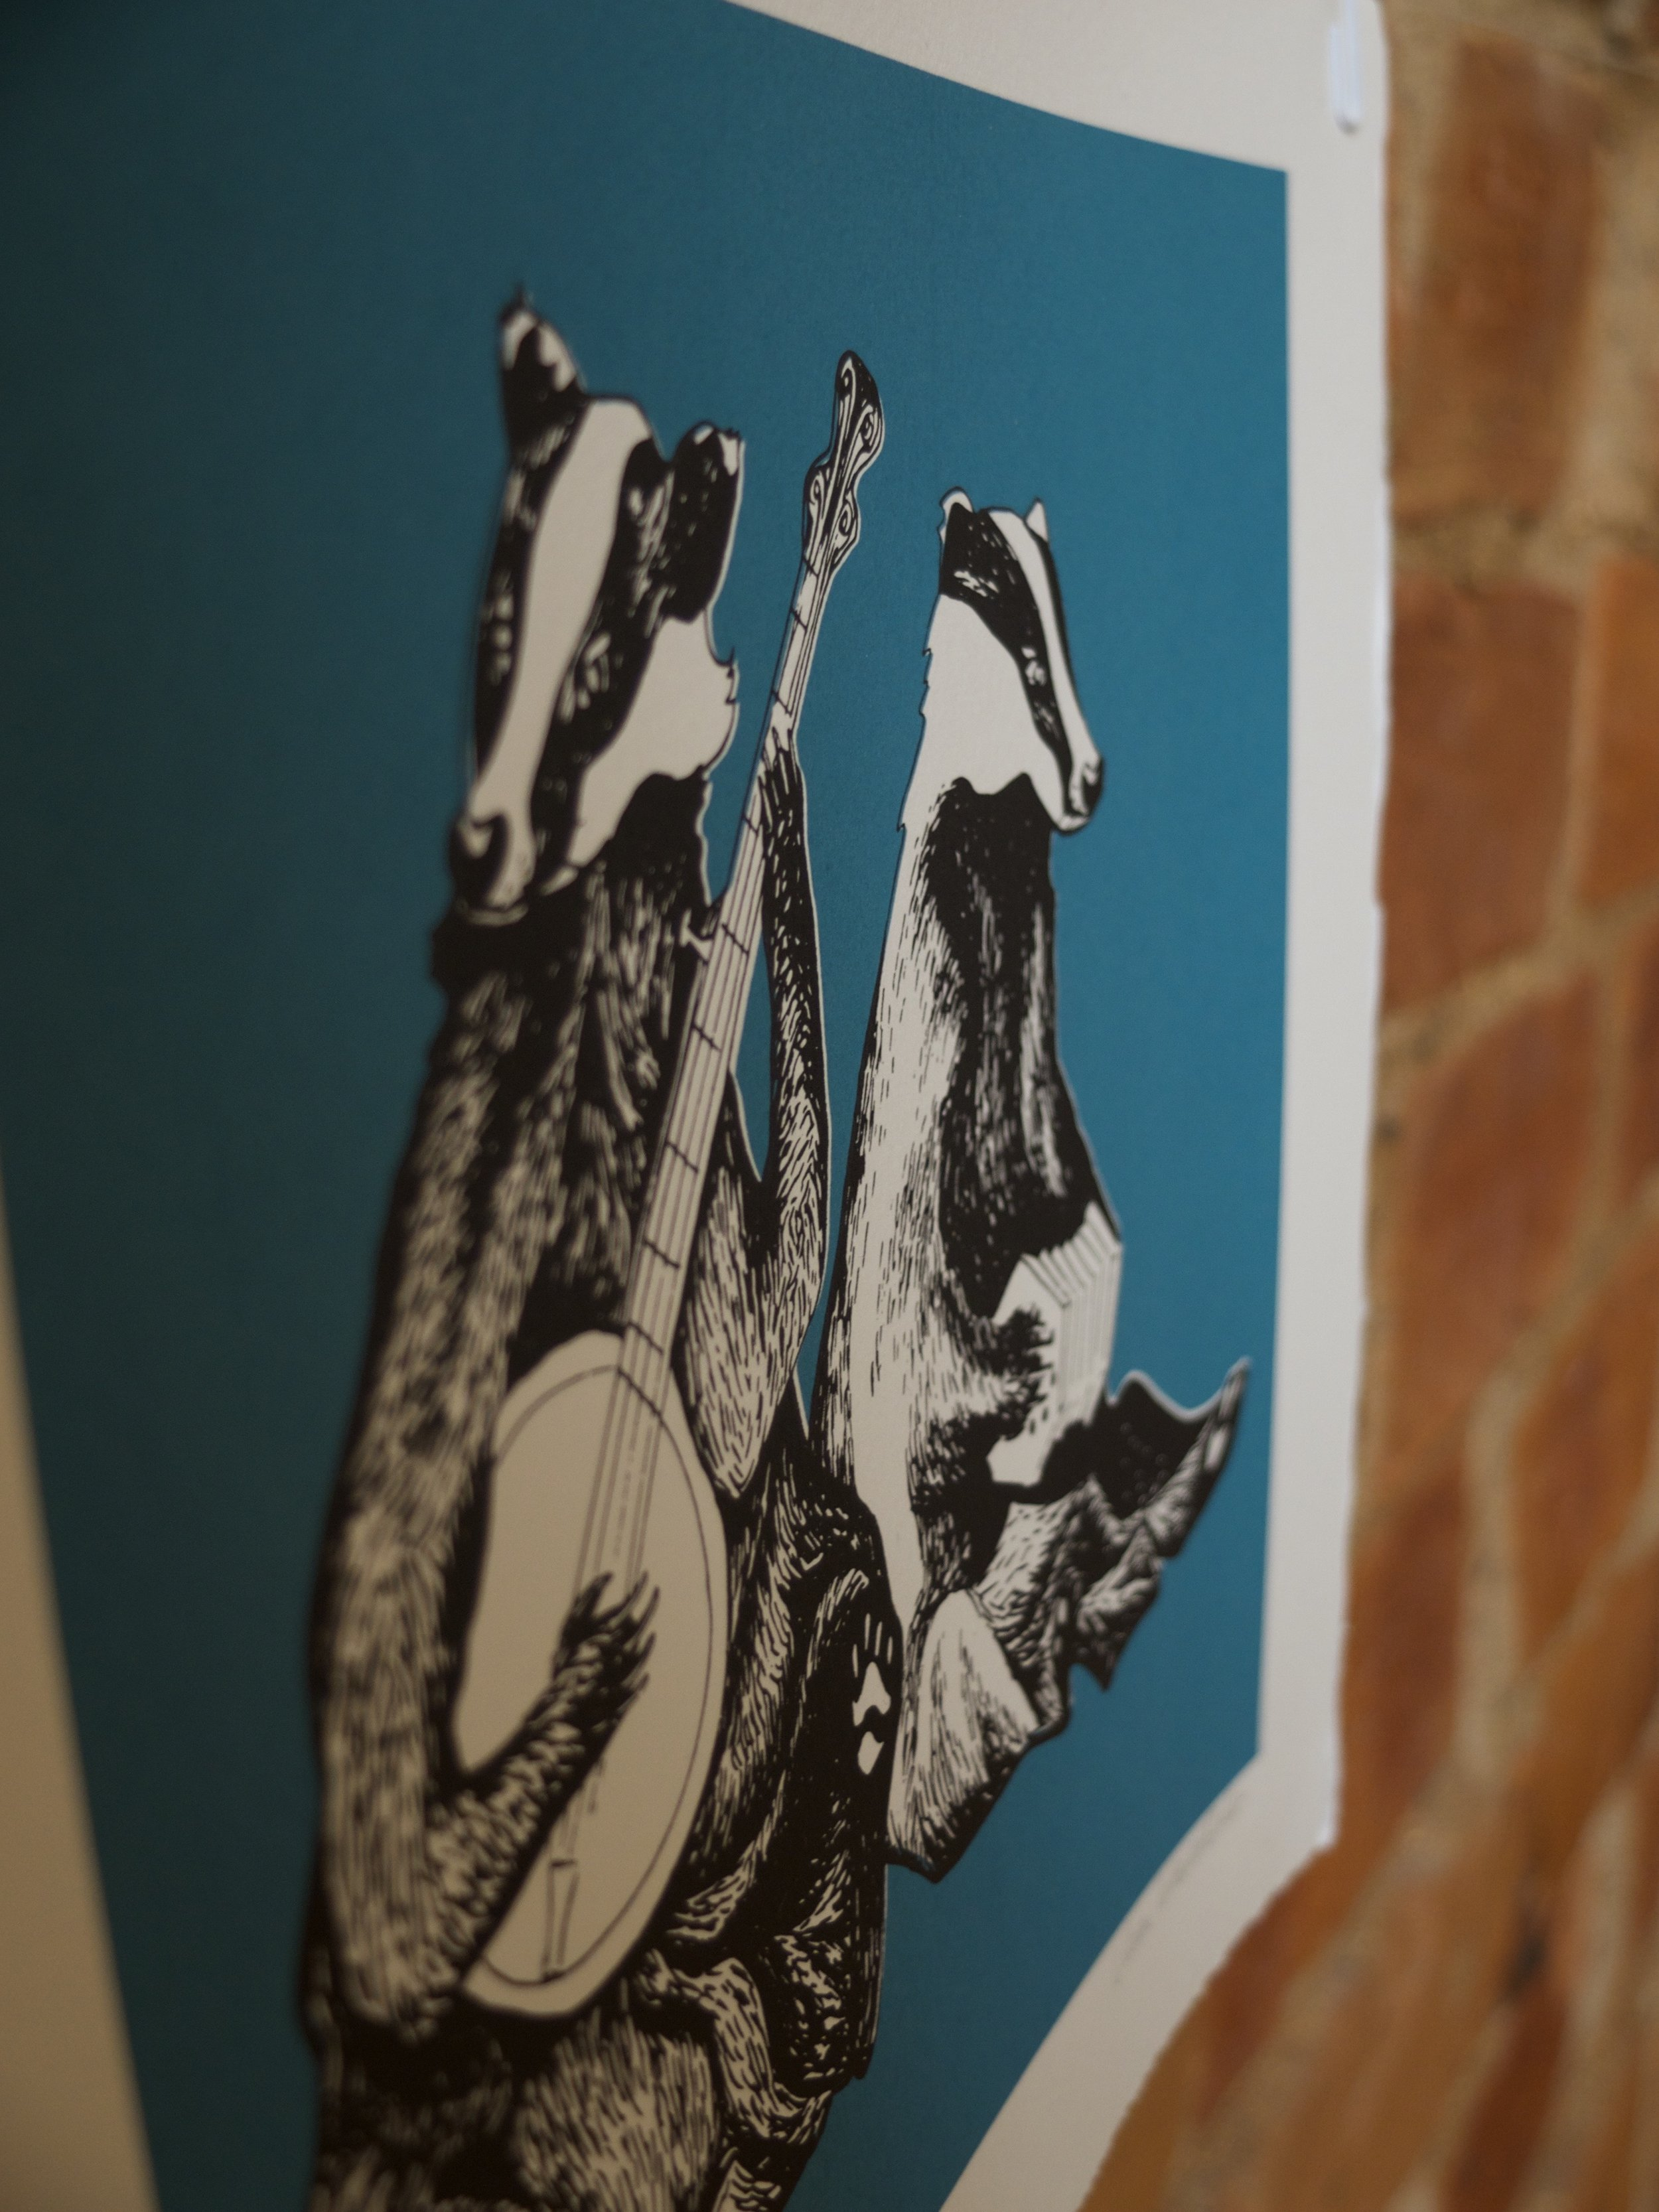 Dueling Badgers. Musical Badgers playing the Banjo and Concertina. Screen Print.